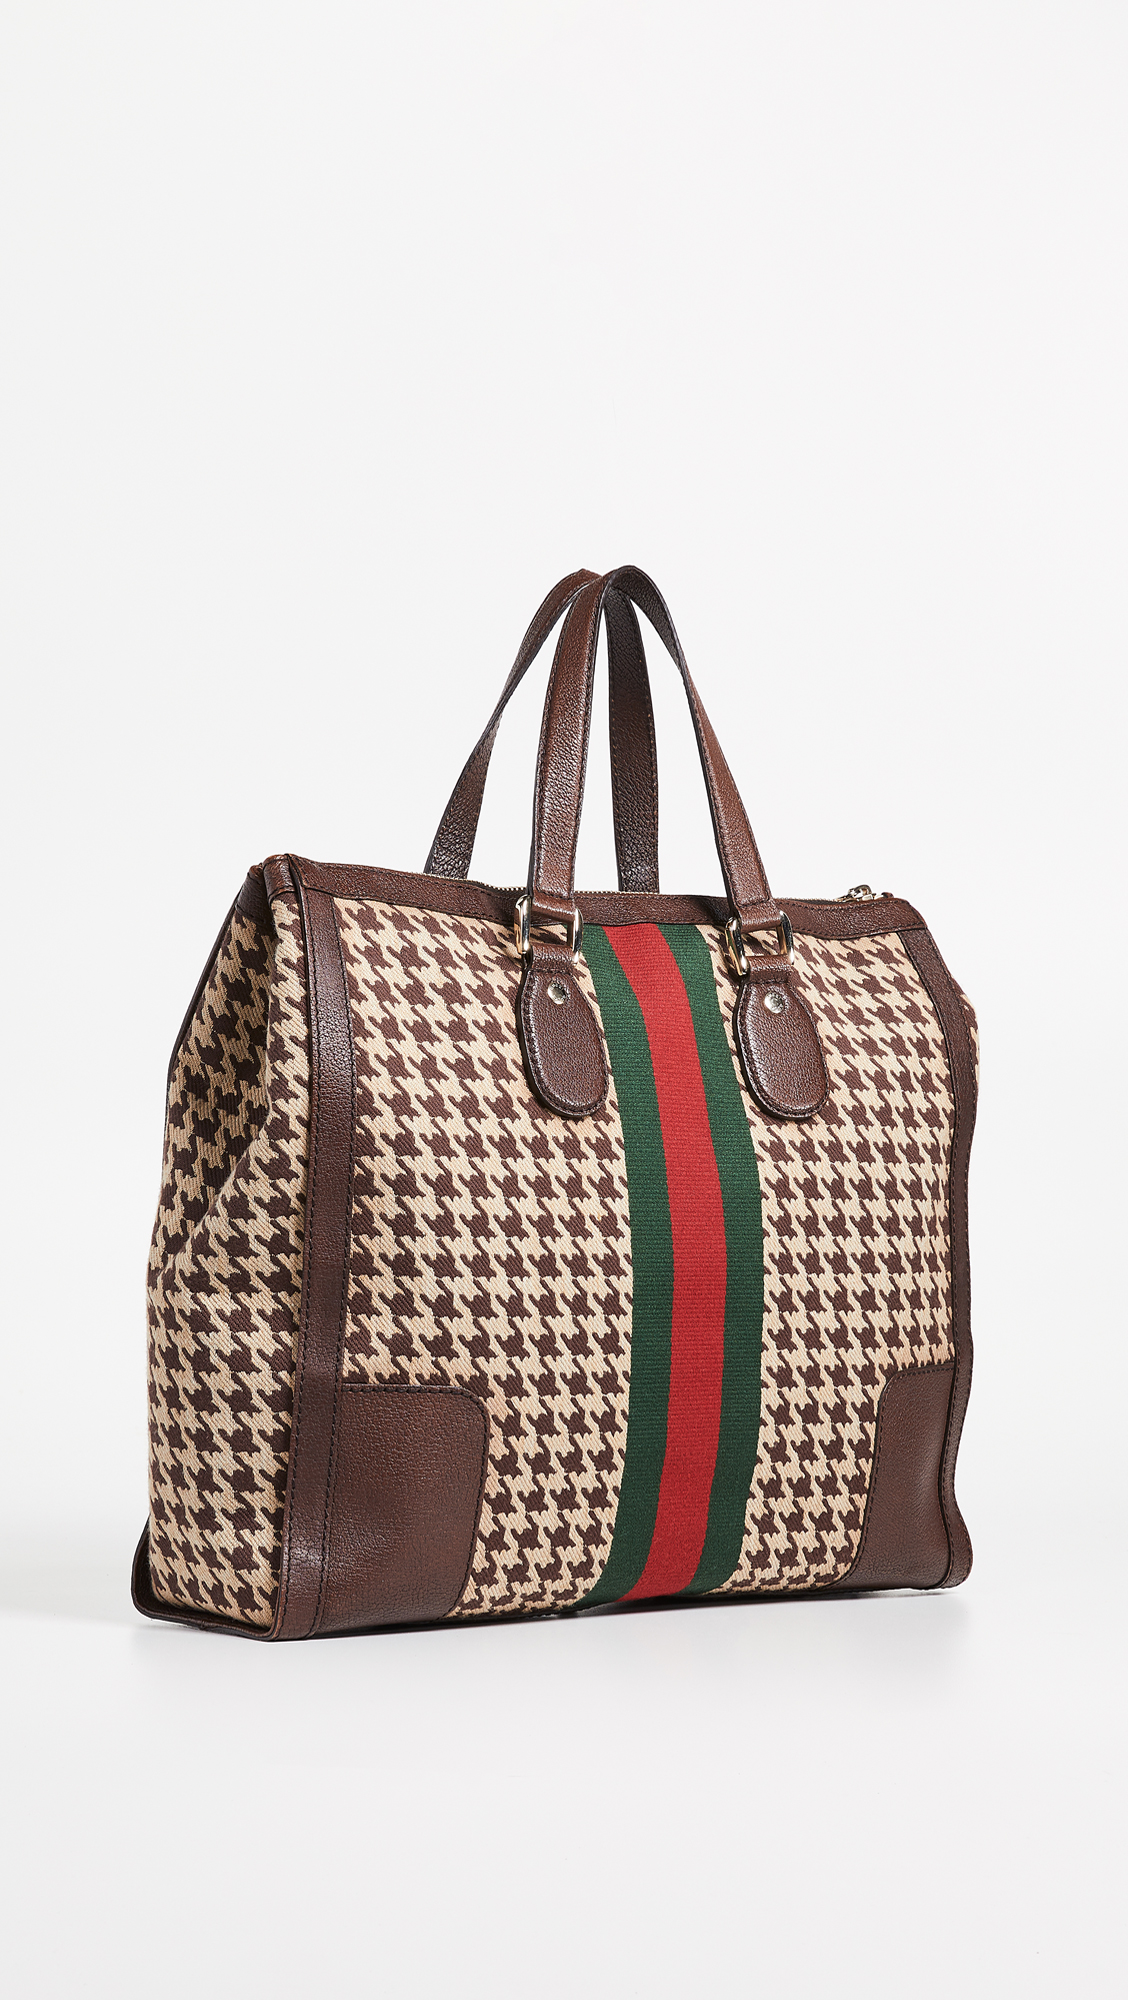 3daf8035bb6 What Goes Around Comes Around Gucci Houndstooth 70s Web Tote